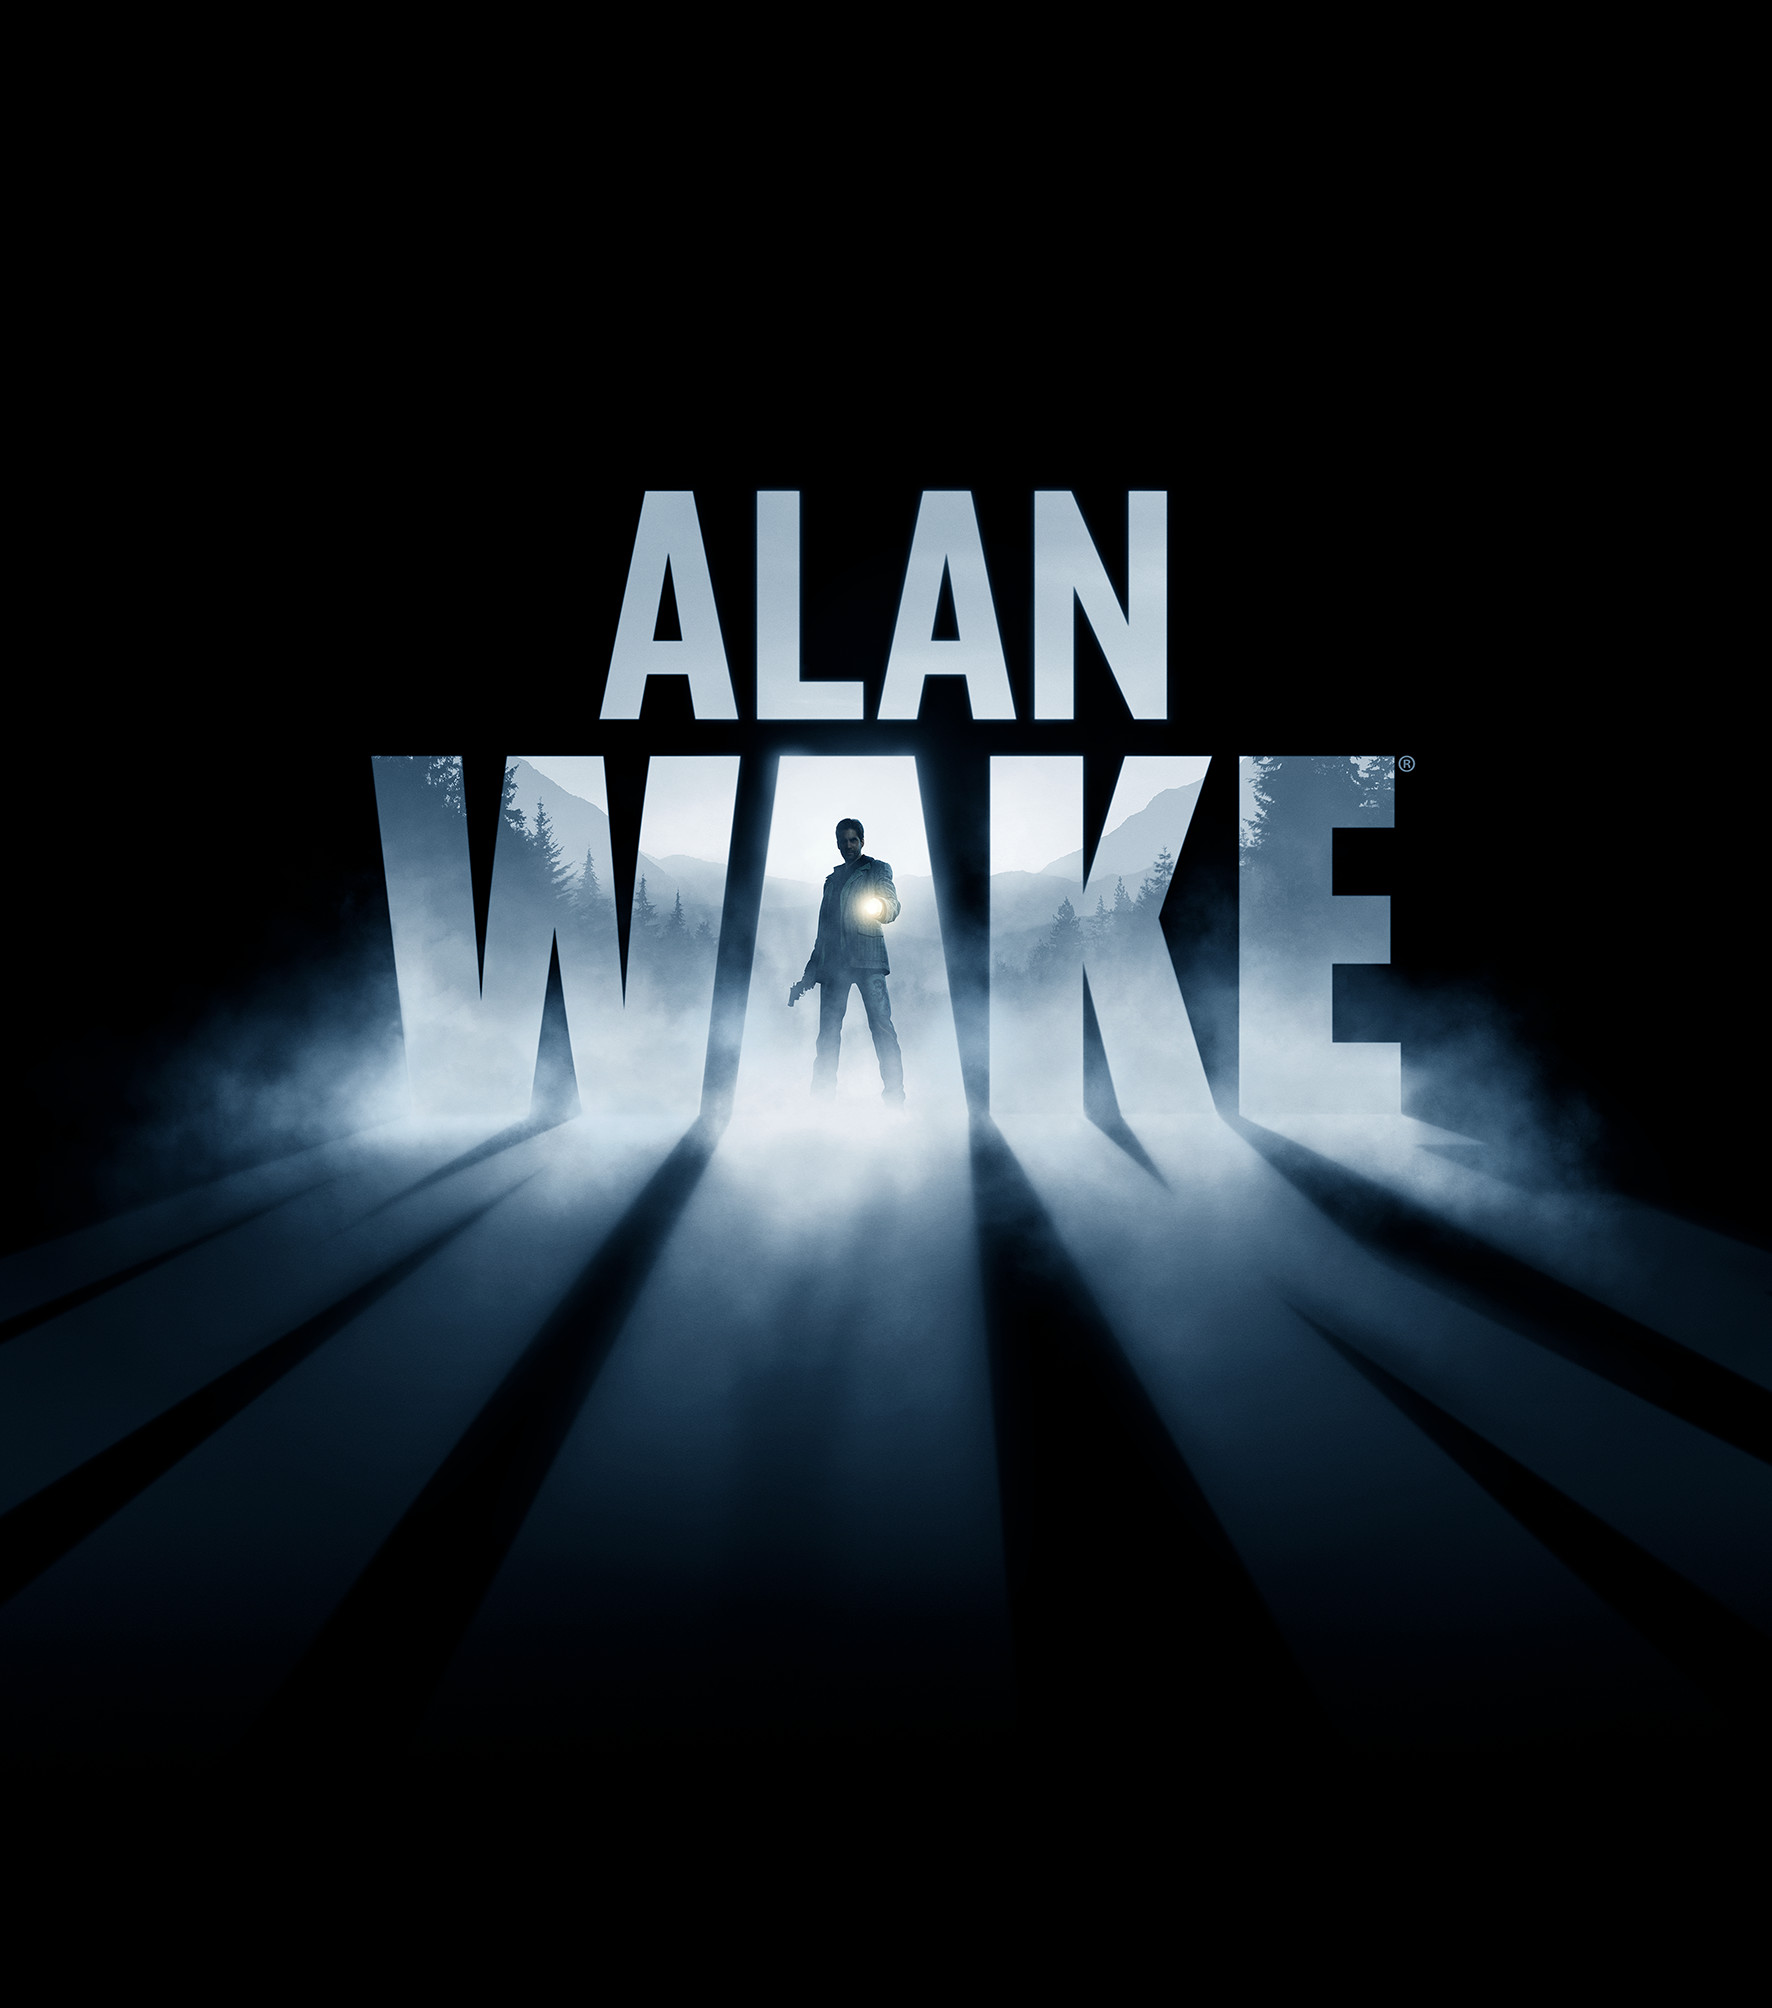 1772x2008 http://forum.alanwake.com/files/alan-wake-logo-hq.png